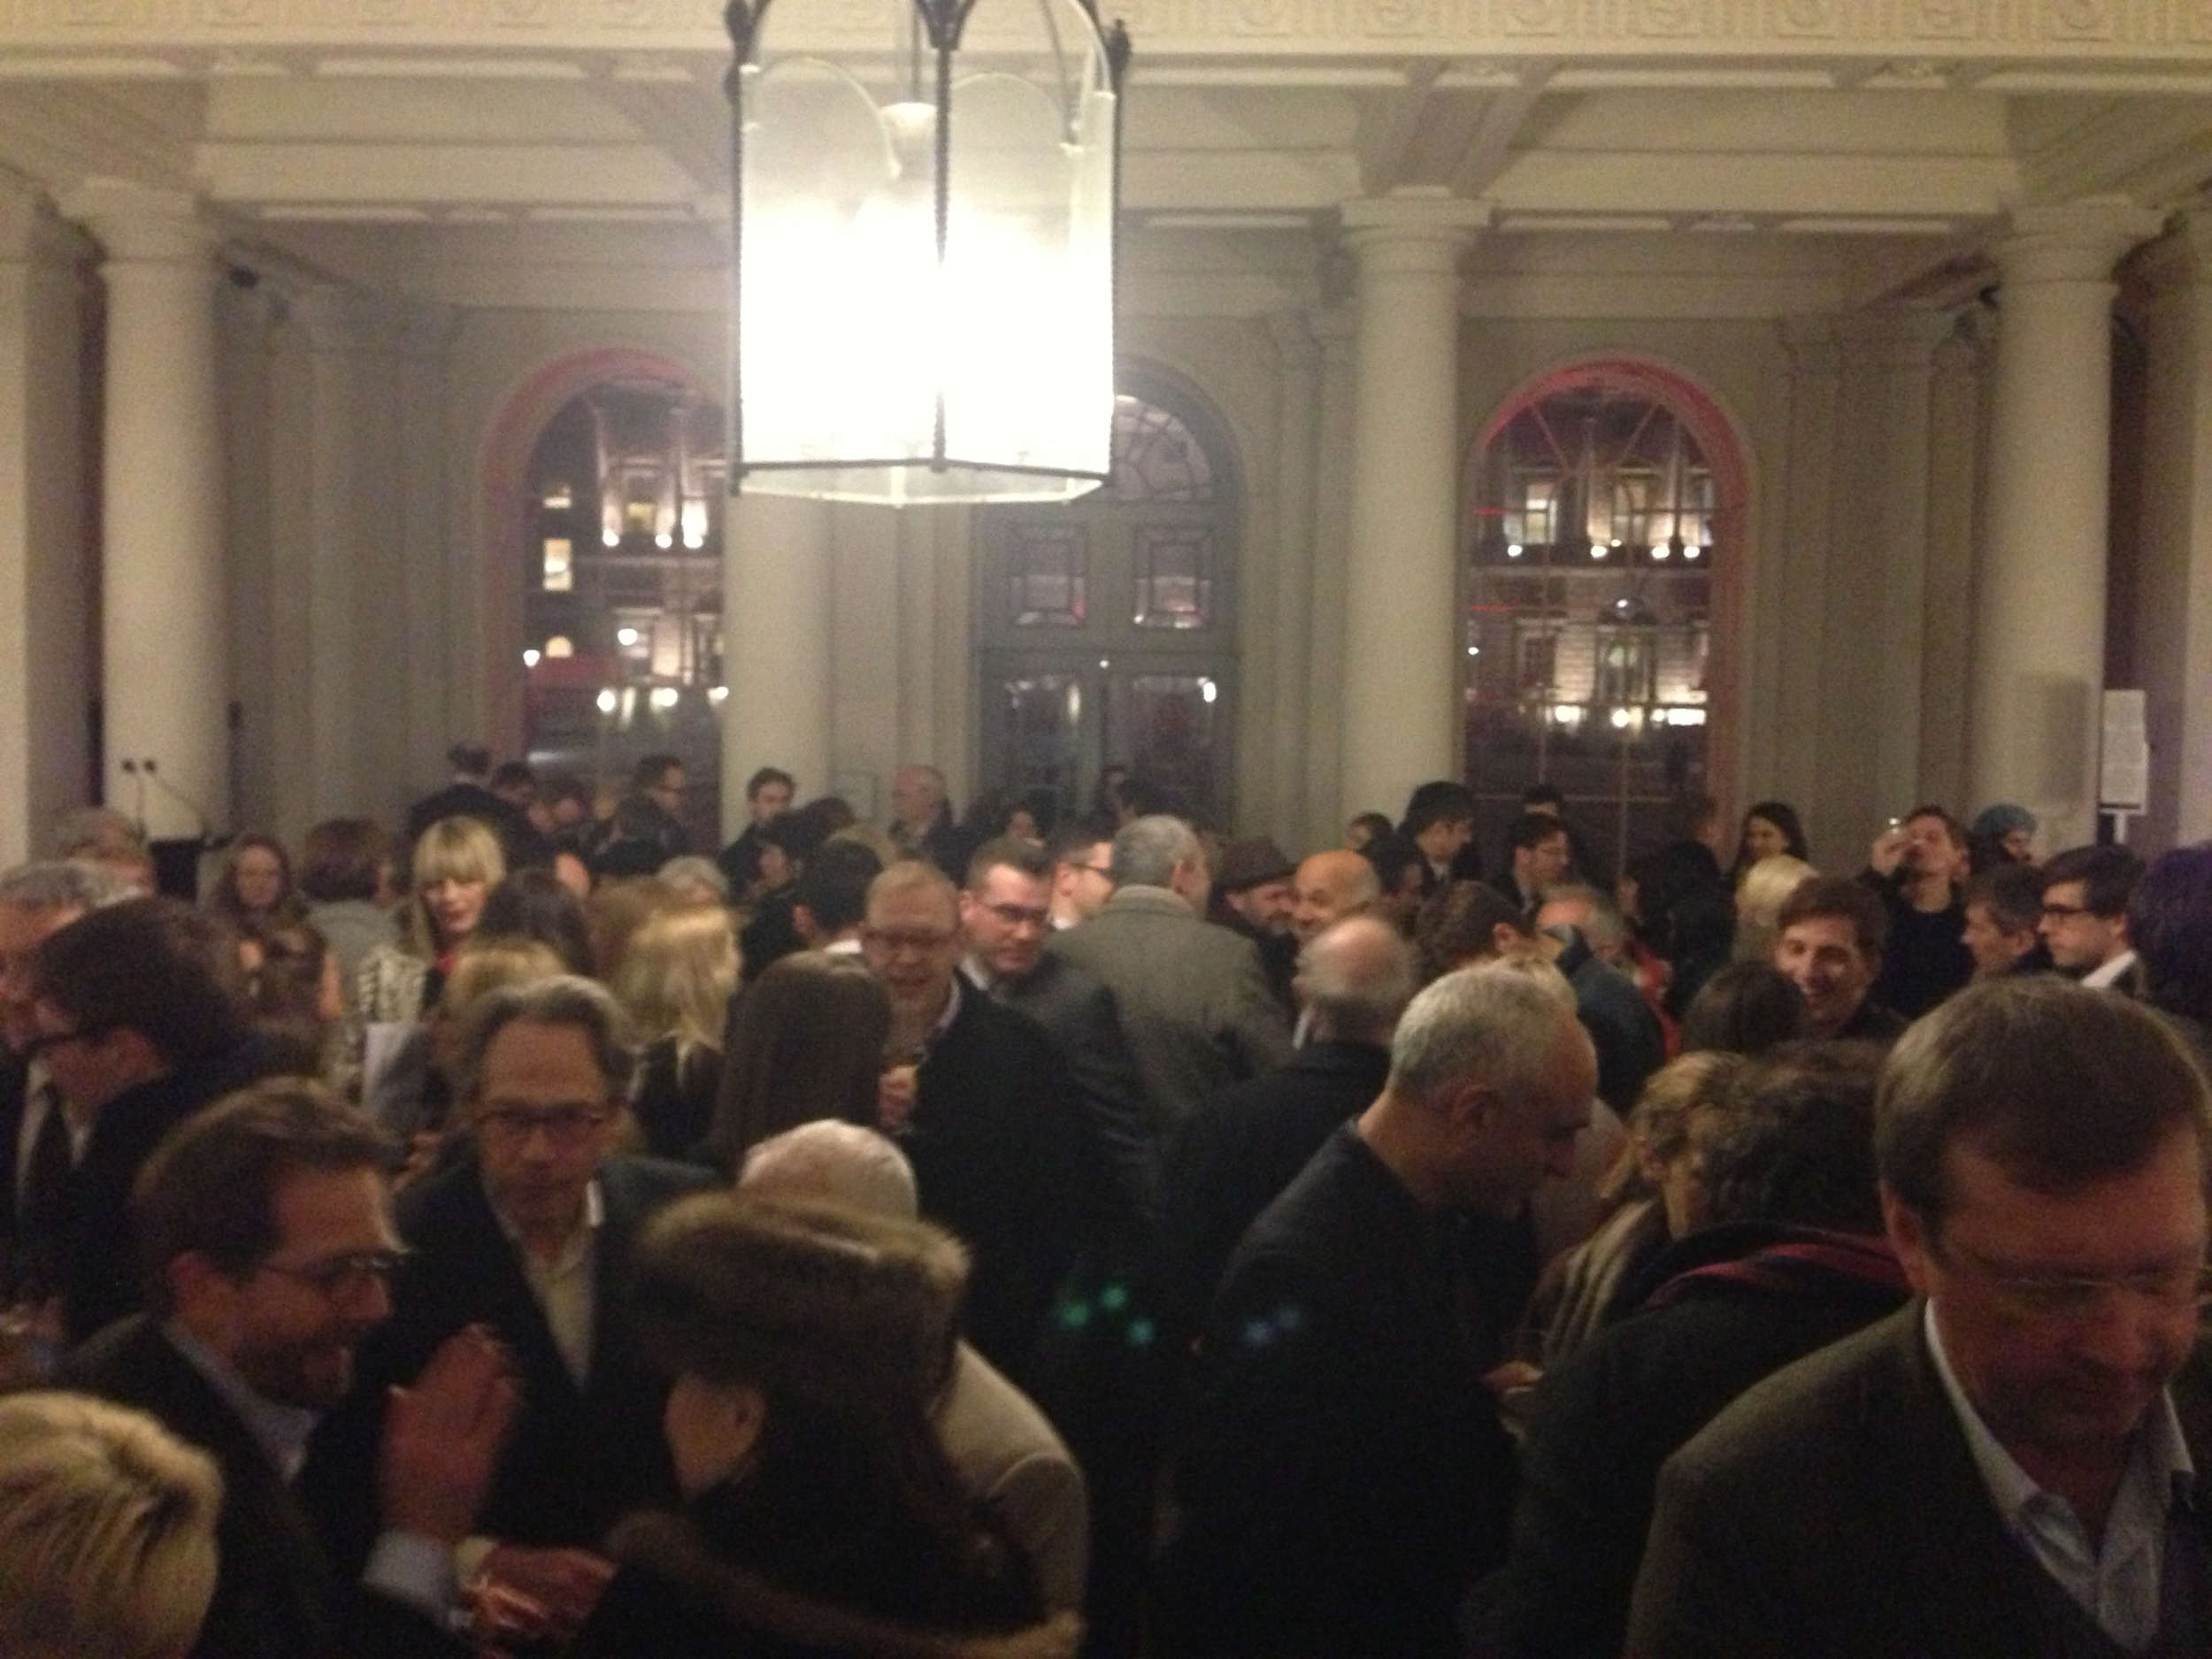 The crowded somerset house